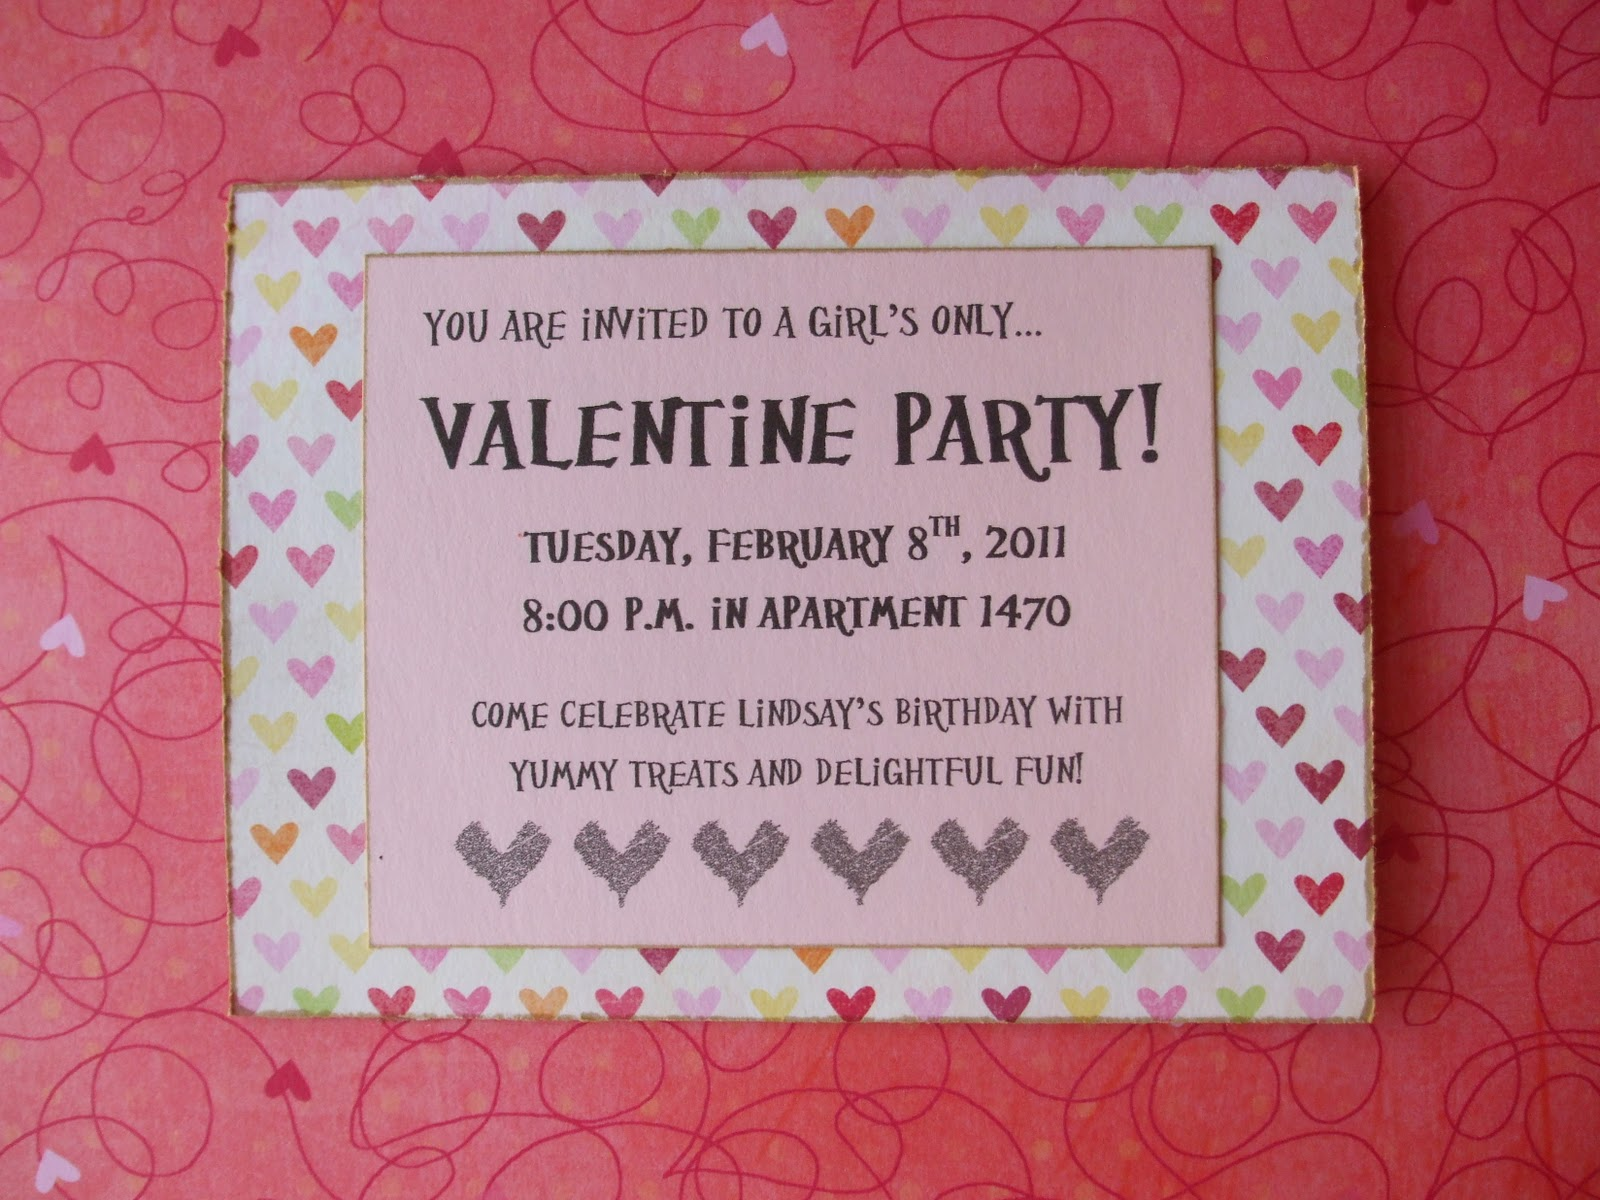 valentines party invitations - Pertamini.co